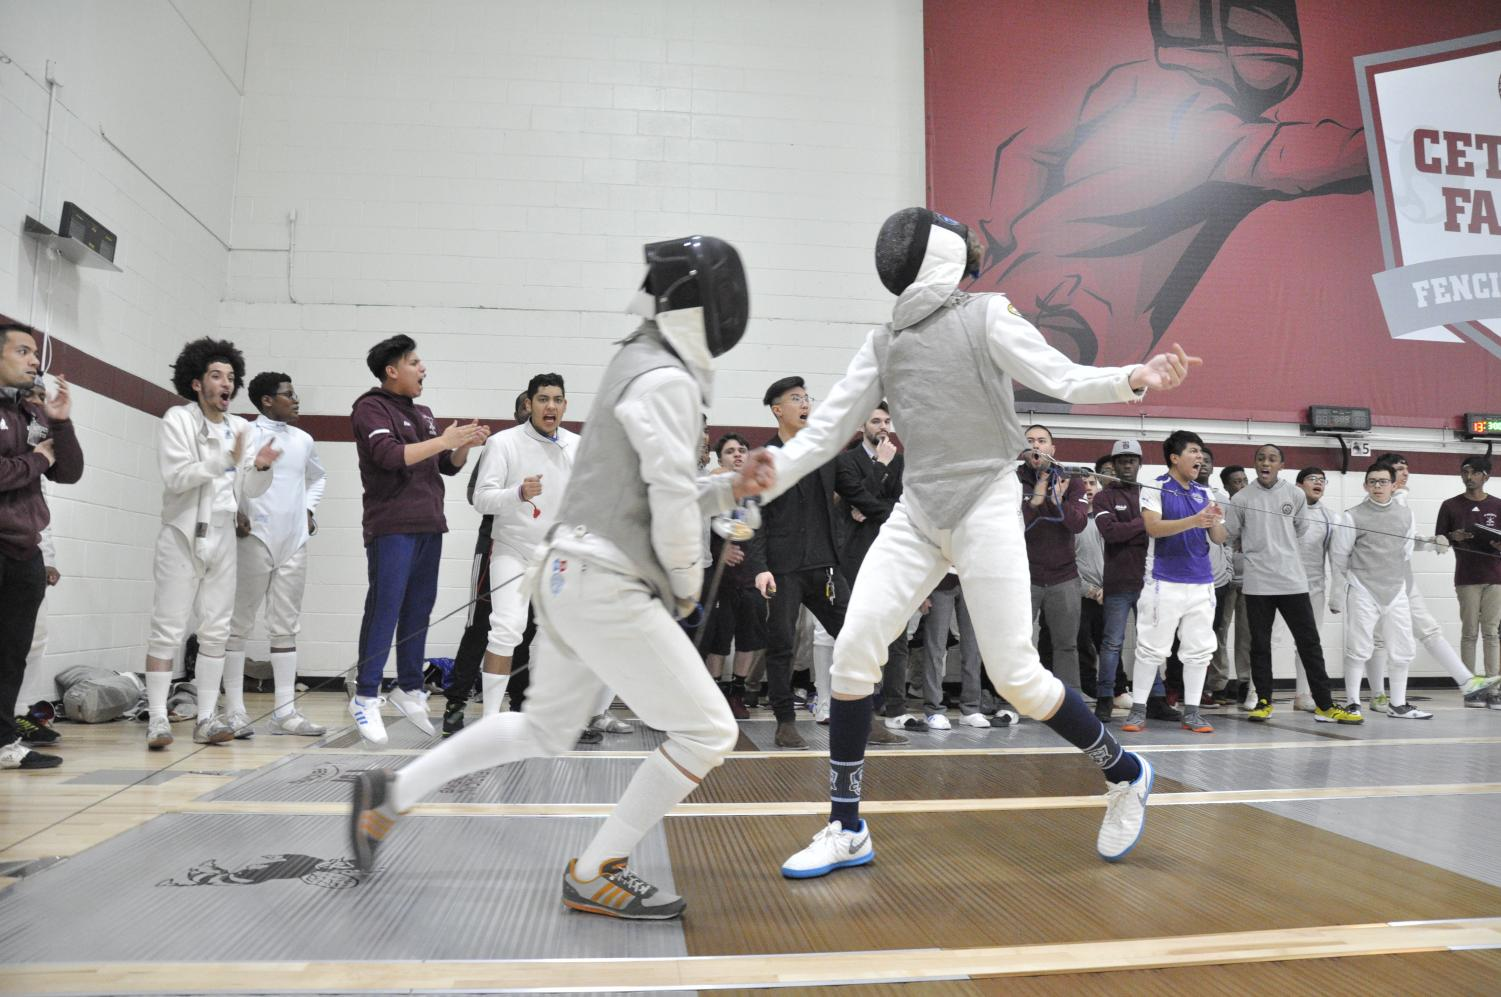 Alex Cruz UDI broke a tie and led the fencing team to victory.